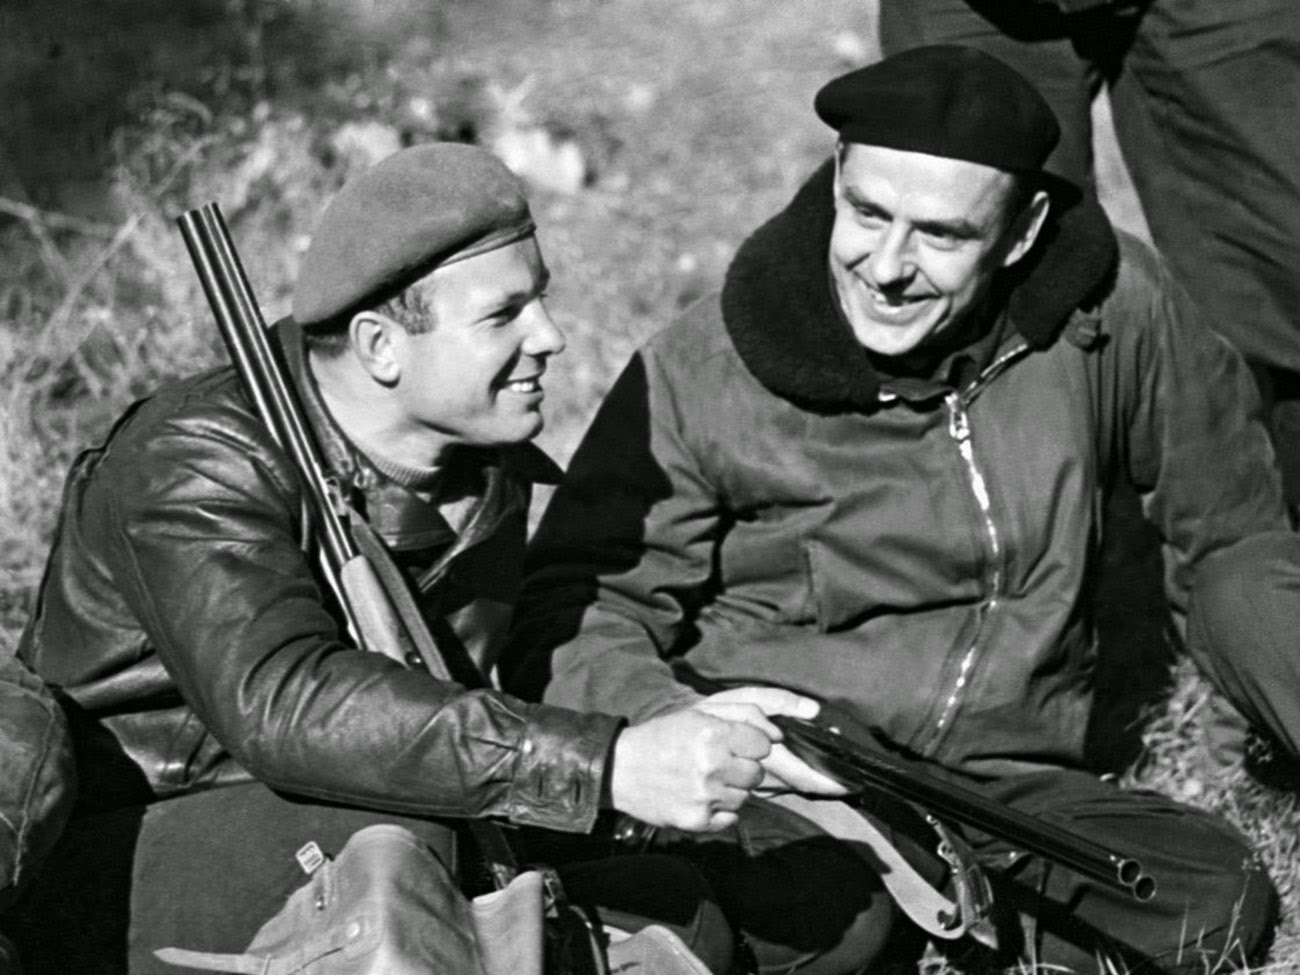 Vladimir Komarov was among Gagarin's best friends. Here they're seen hunting together.